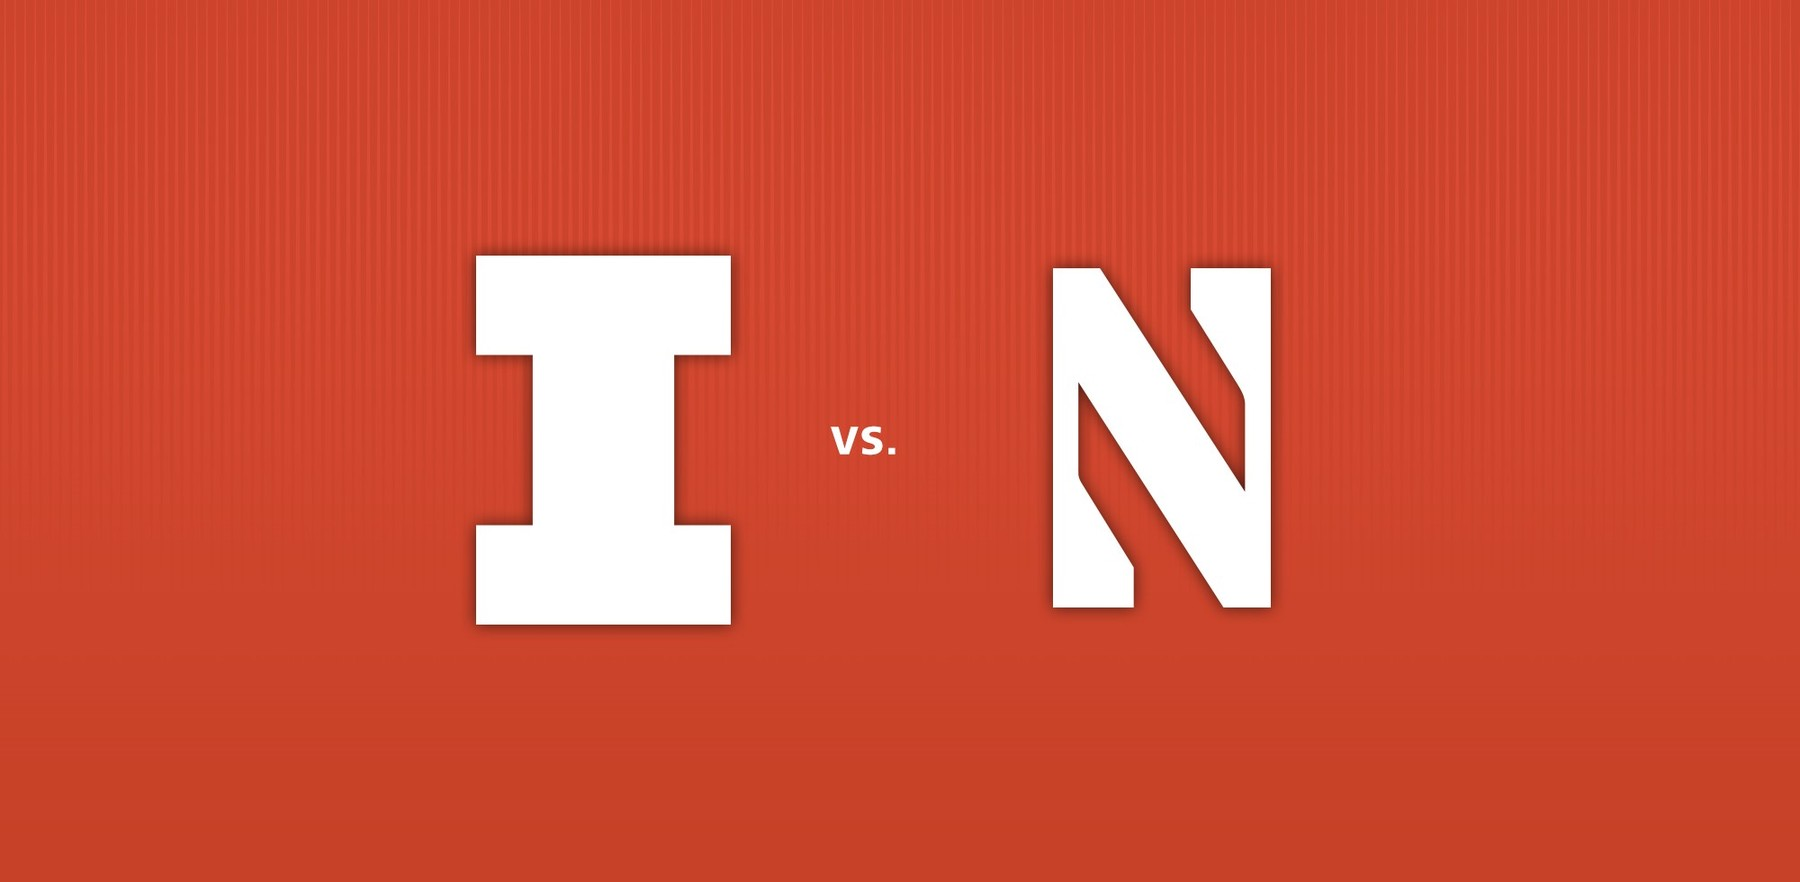 graphic image with logos for the Illini and the Wildcats